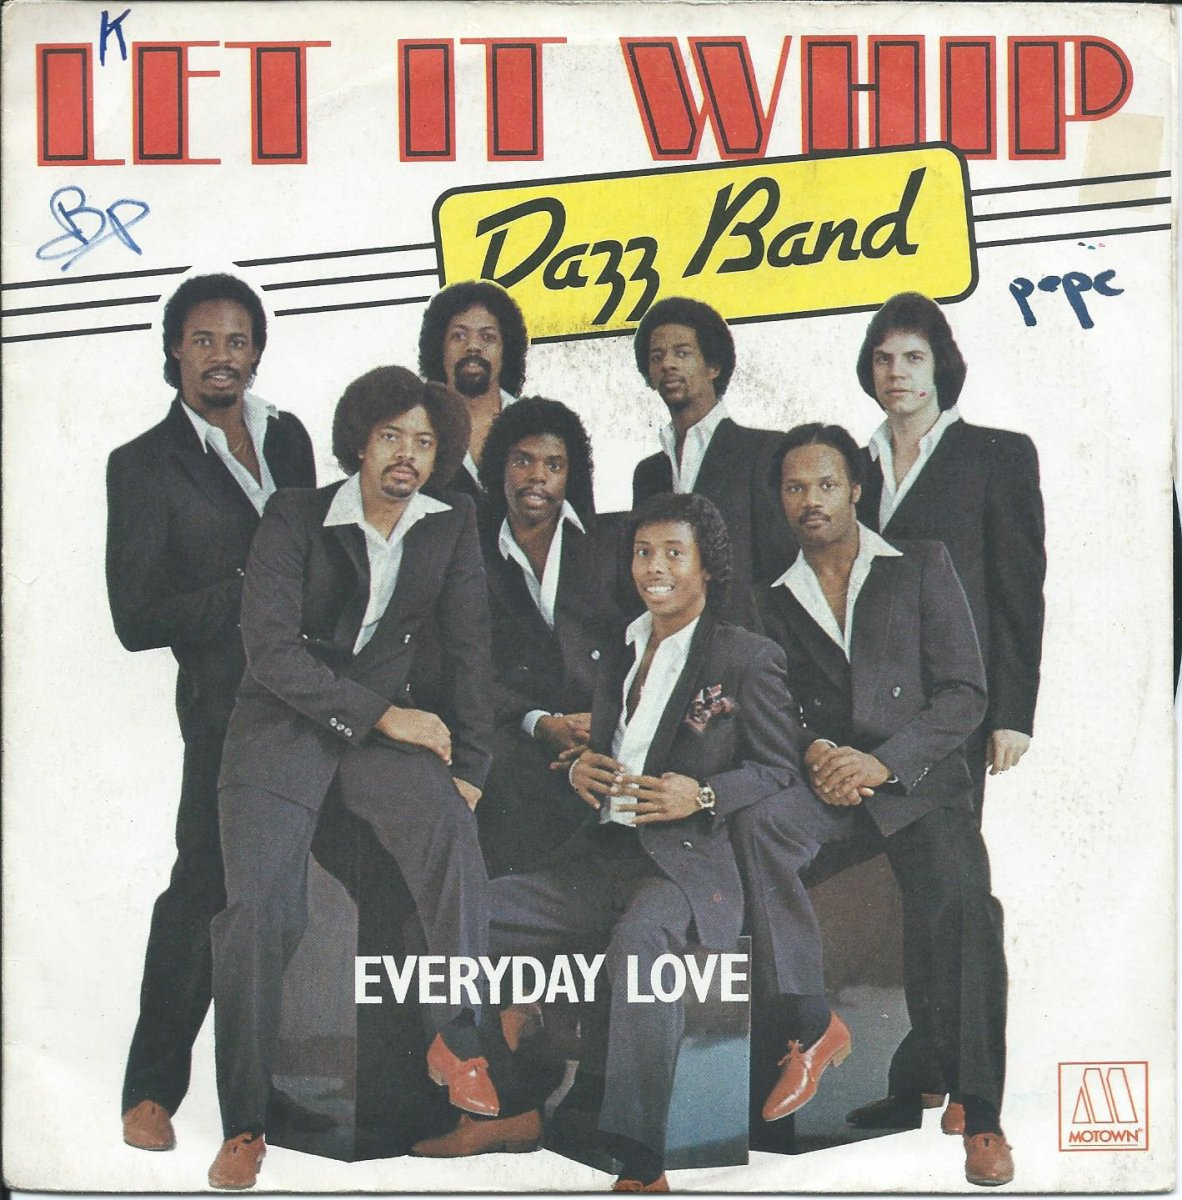 DAZZ BAND / LET IT WHIP / EVERYDAY LOVE (7